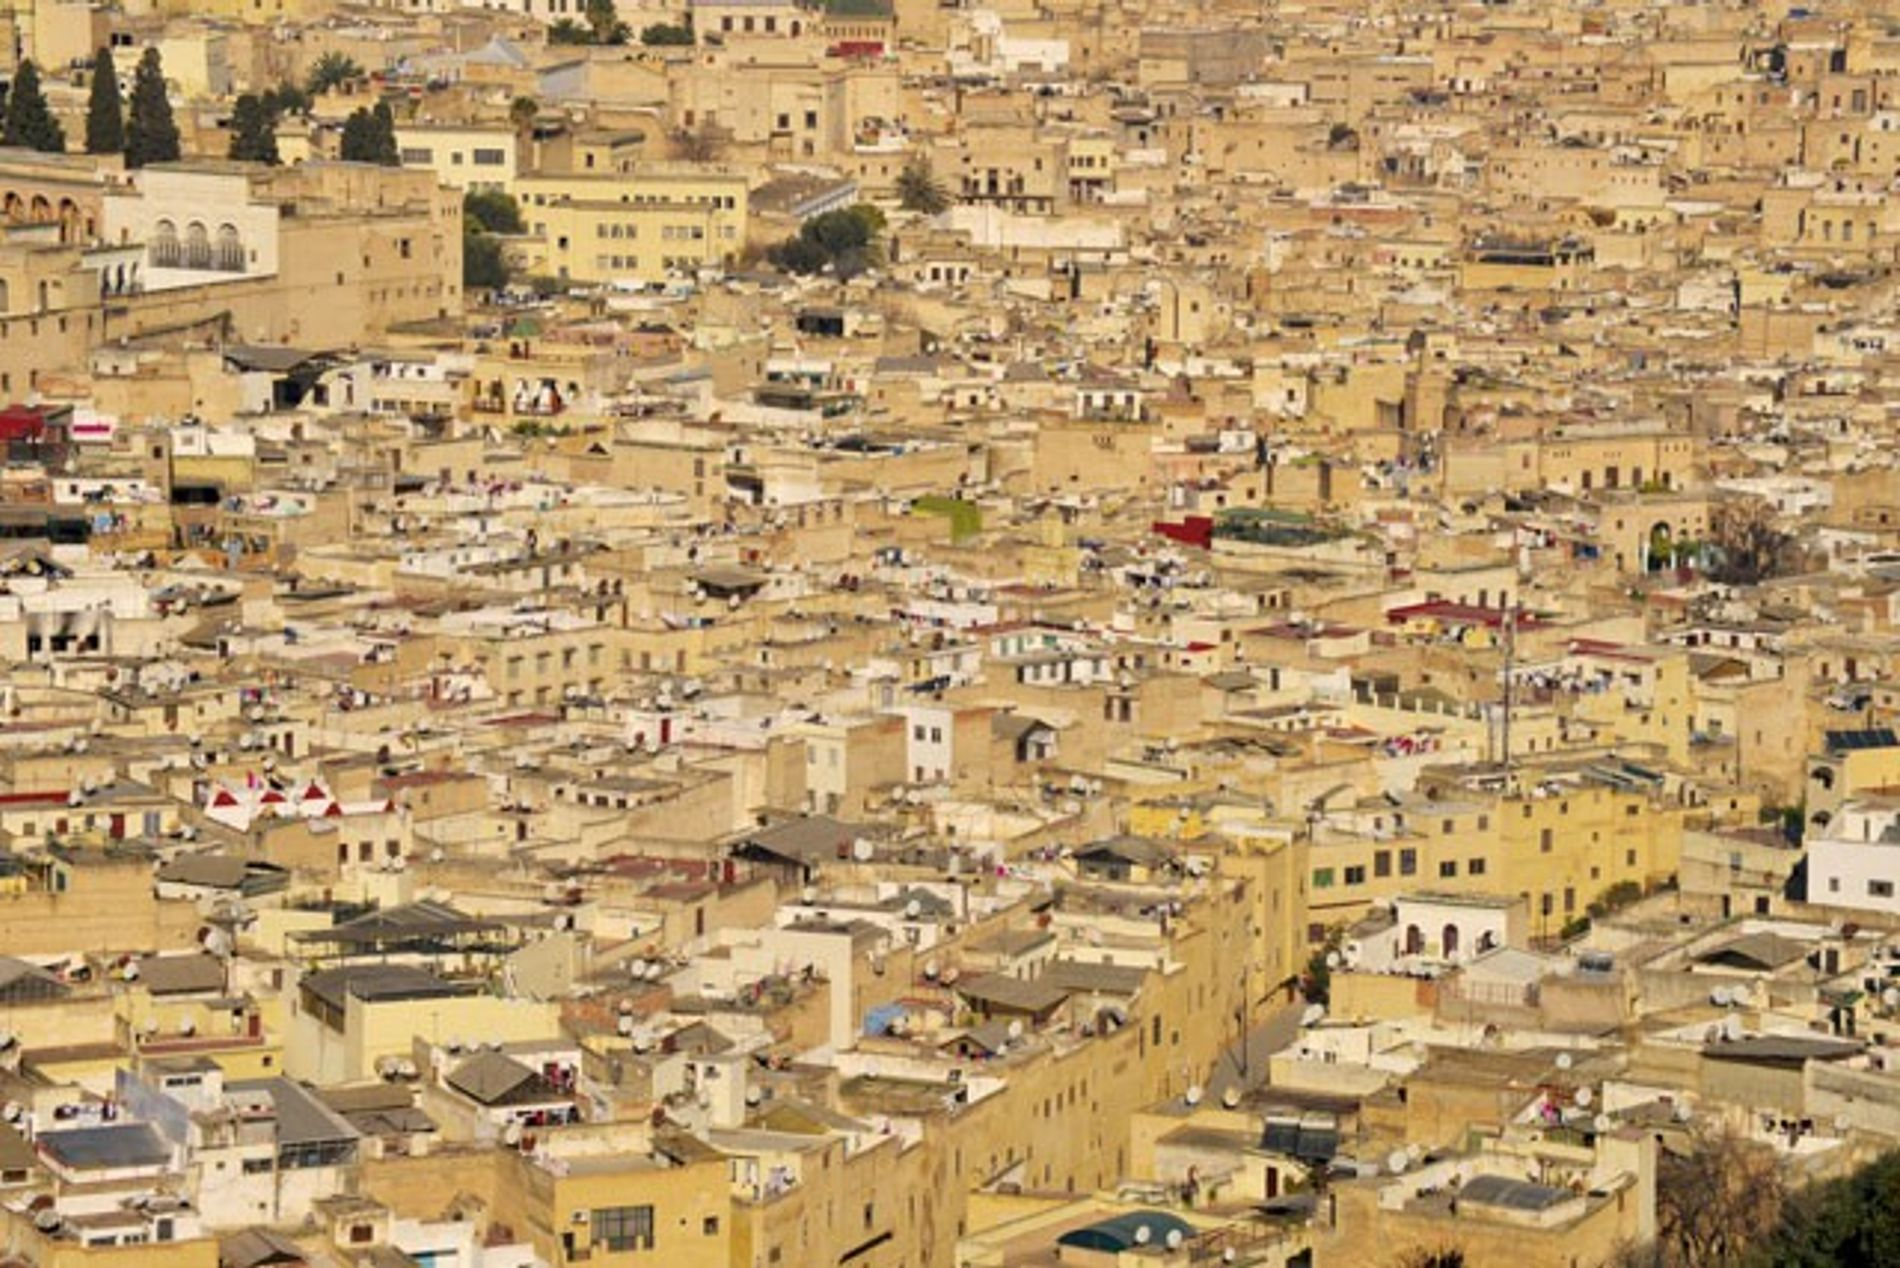 Morocco 9 000 Streets 40 000 Dead Ends National Geographic